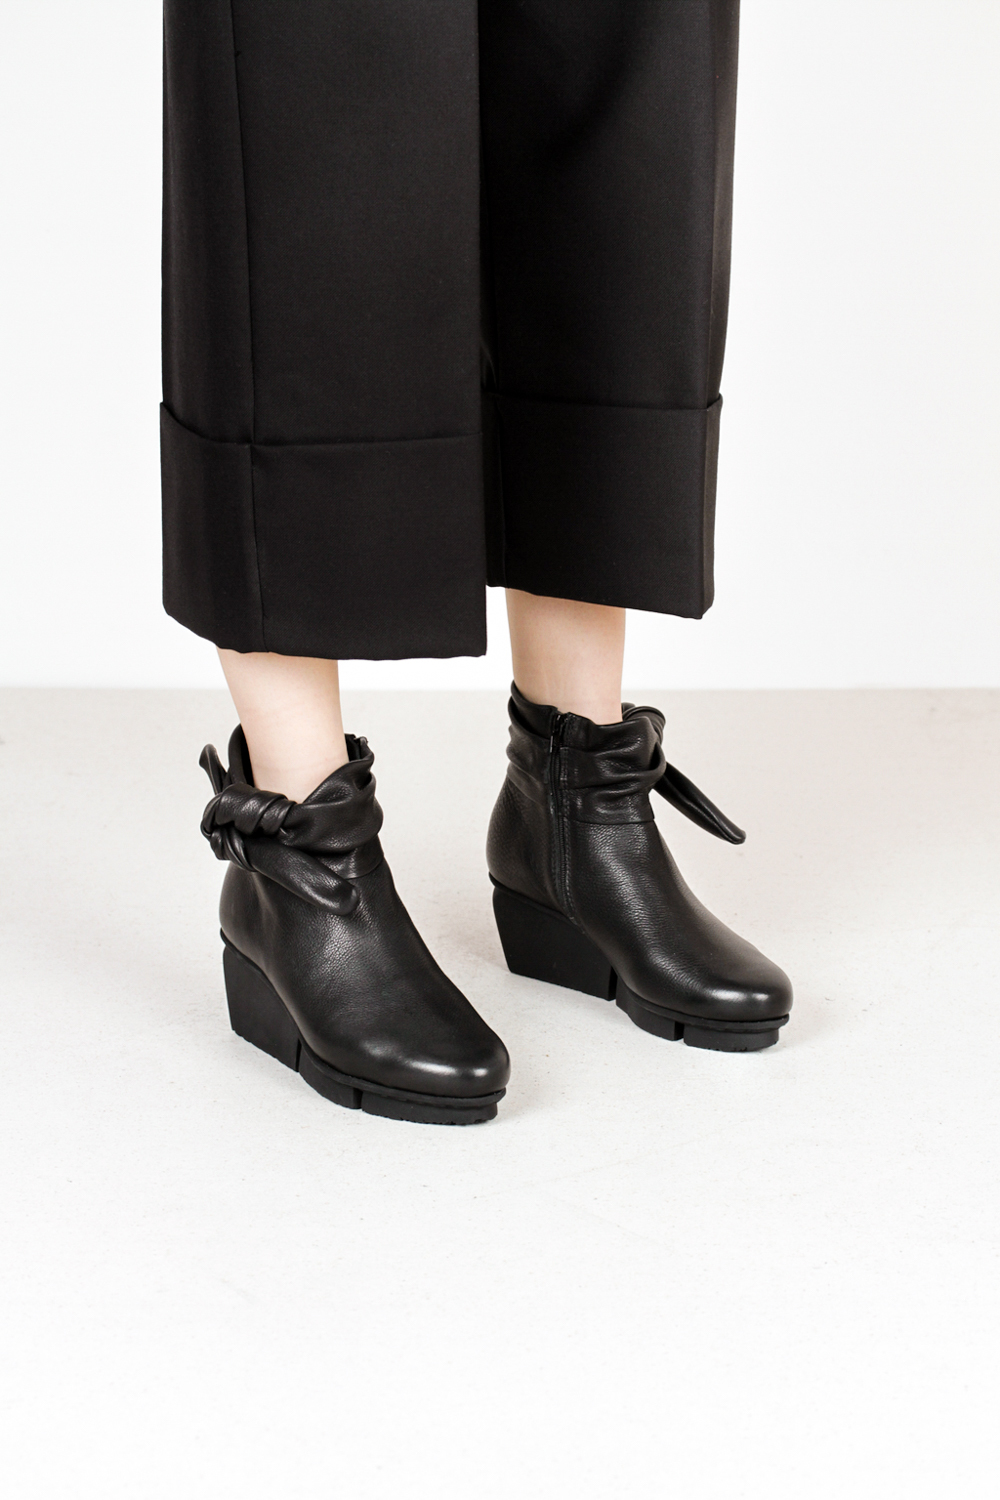 Trippen tippet f vst black leather boots